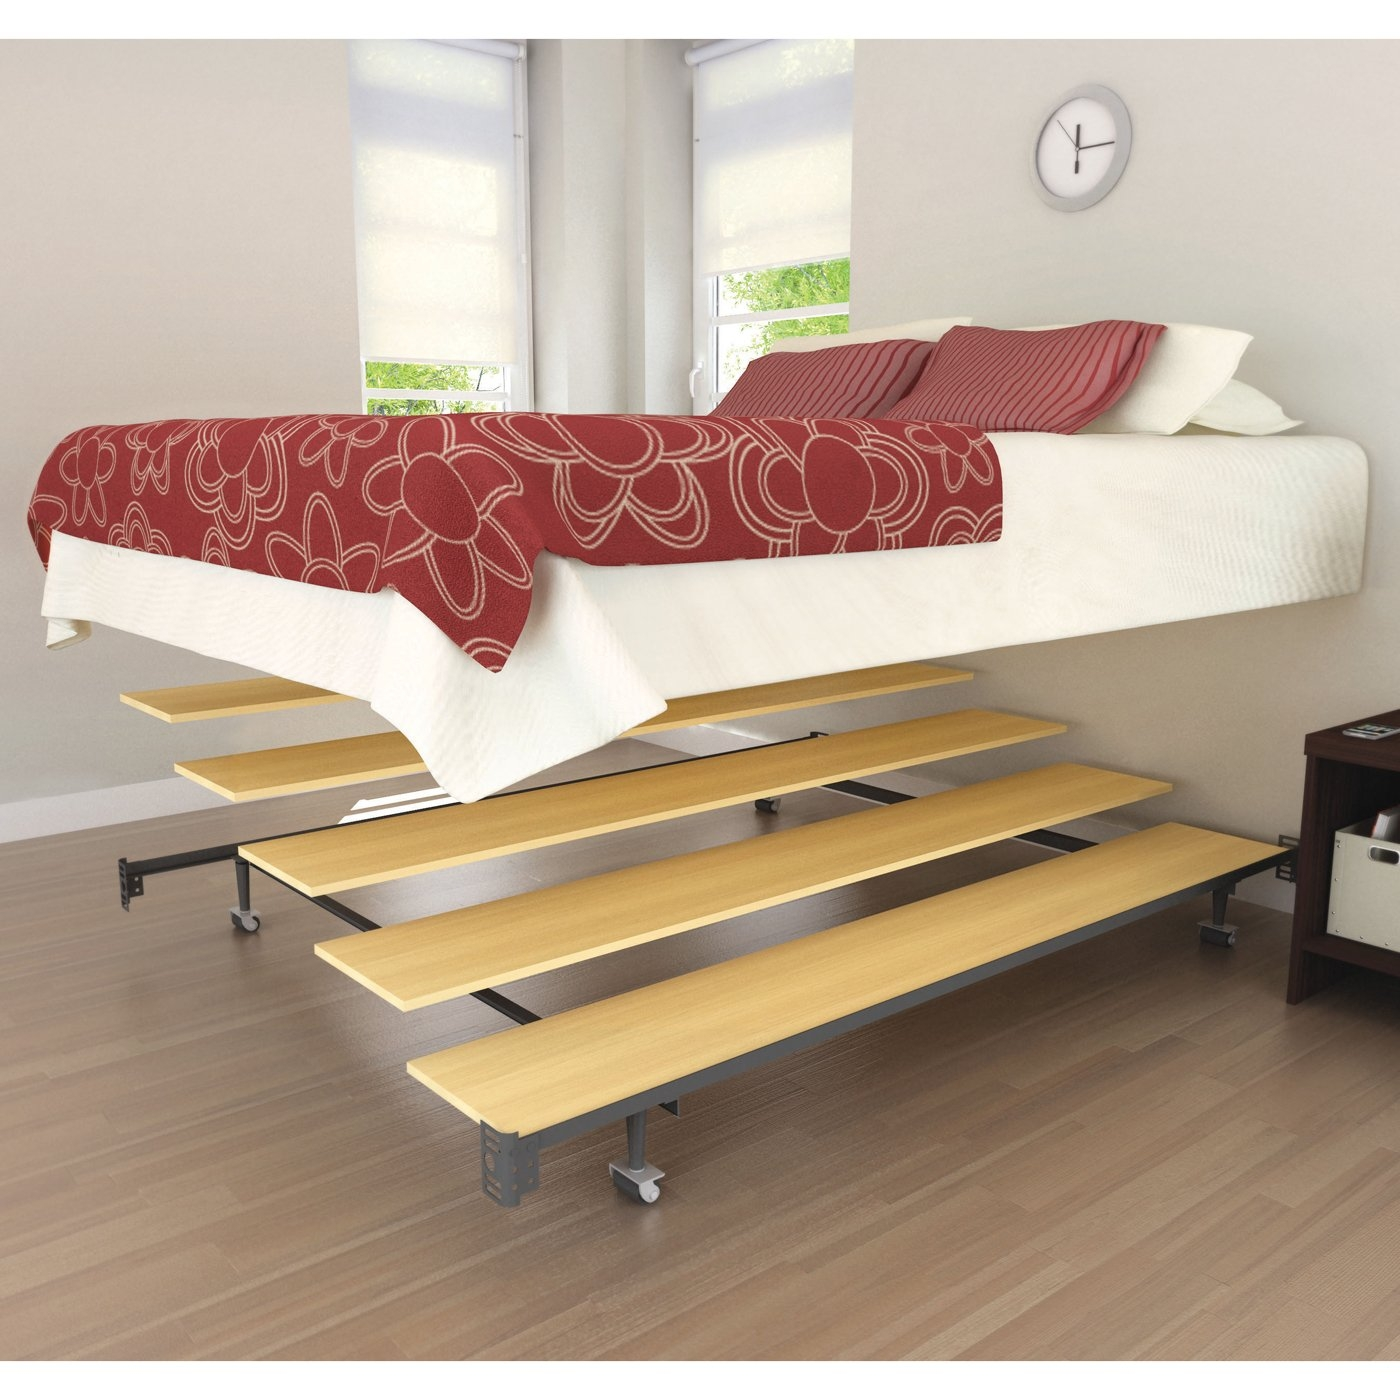 Permalink to Tall Queen Size Bed Frame